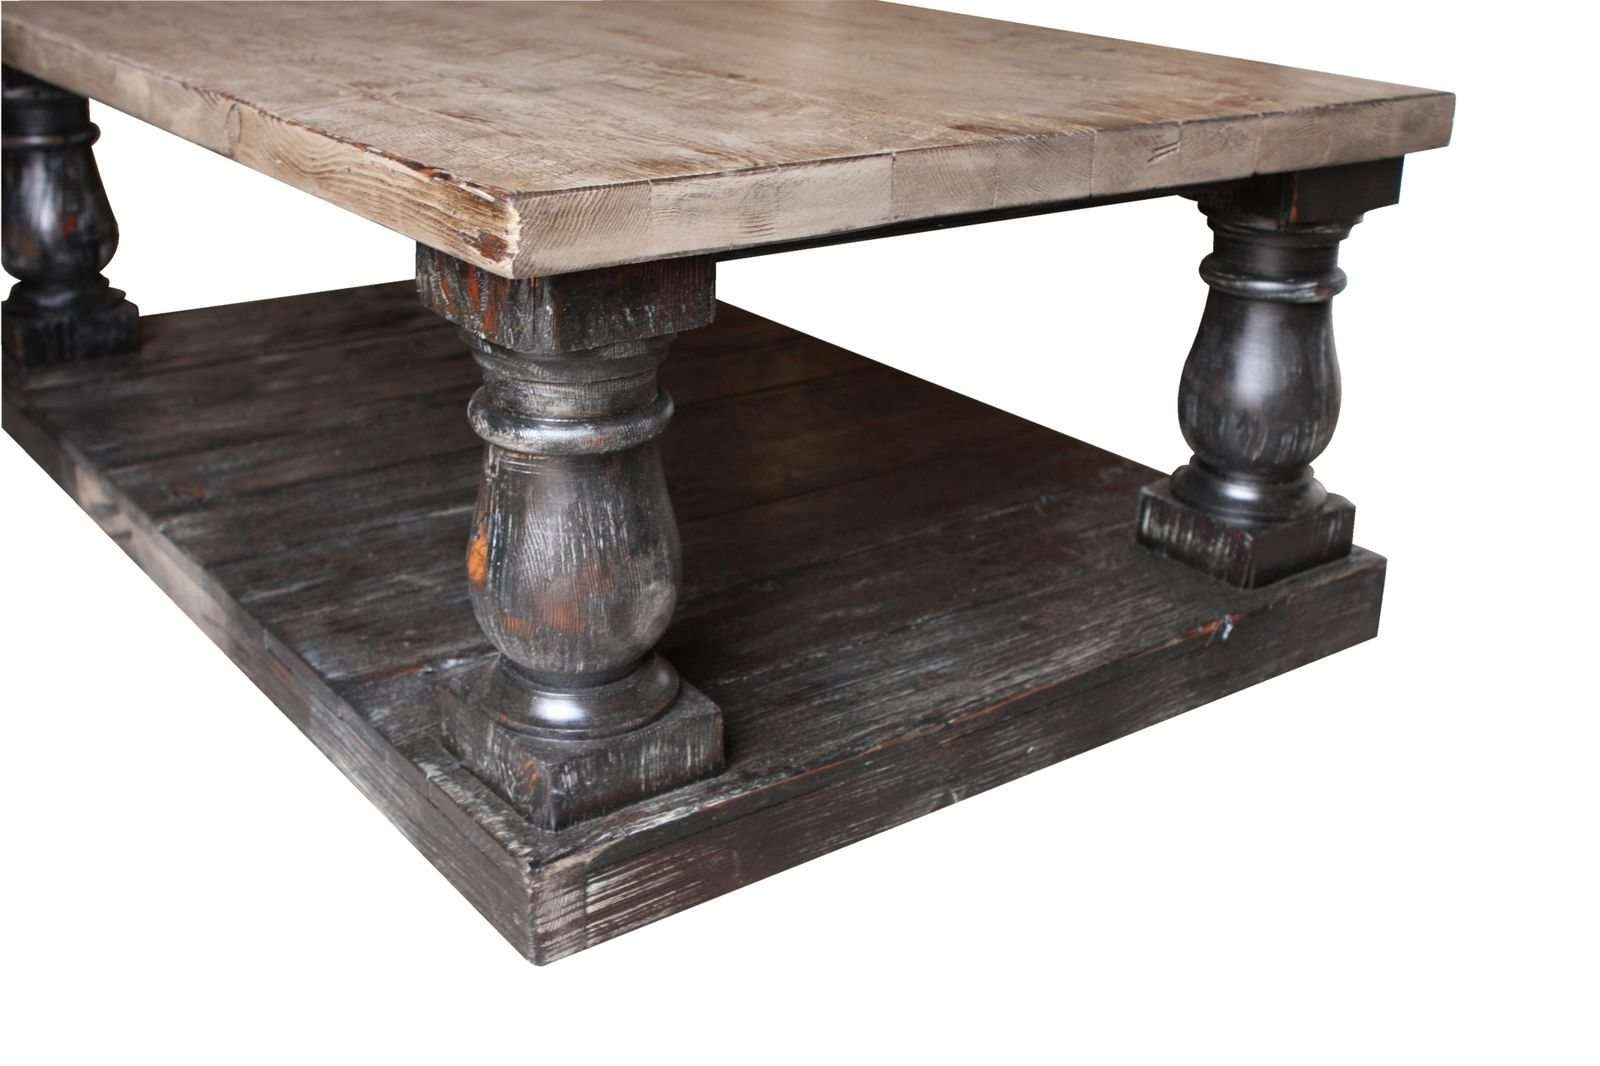 Large Rustic Coffee Tables — All Home Design Solutions Within Favorite Large Rustic Coffee Tables (View 10 of 20)